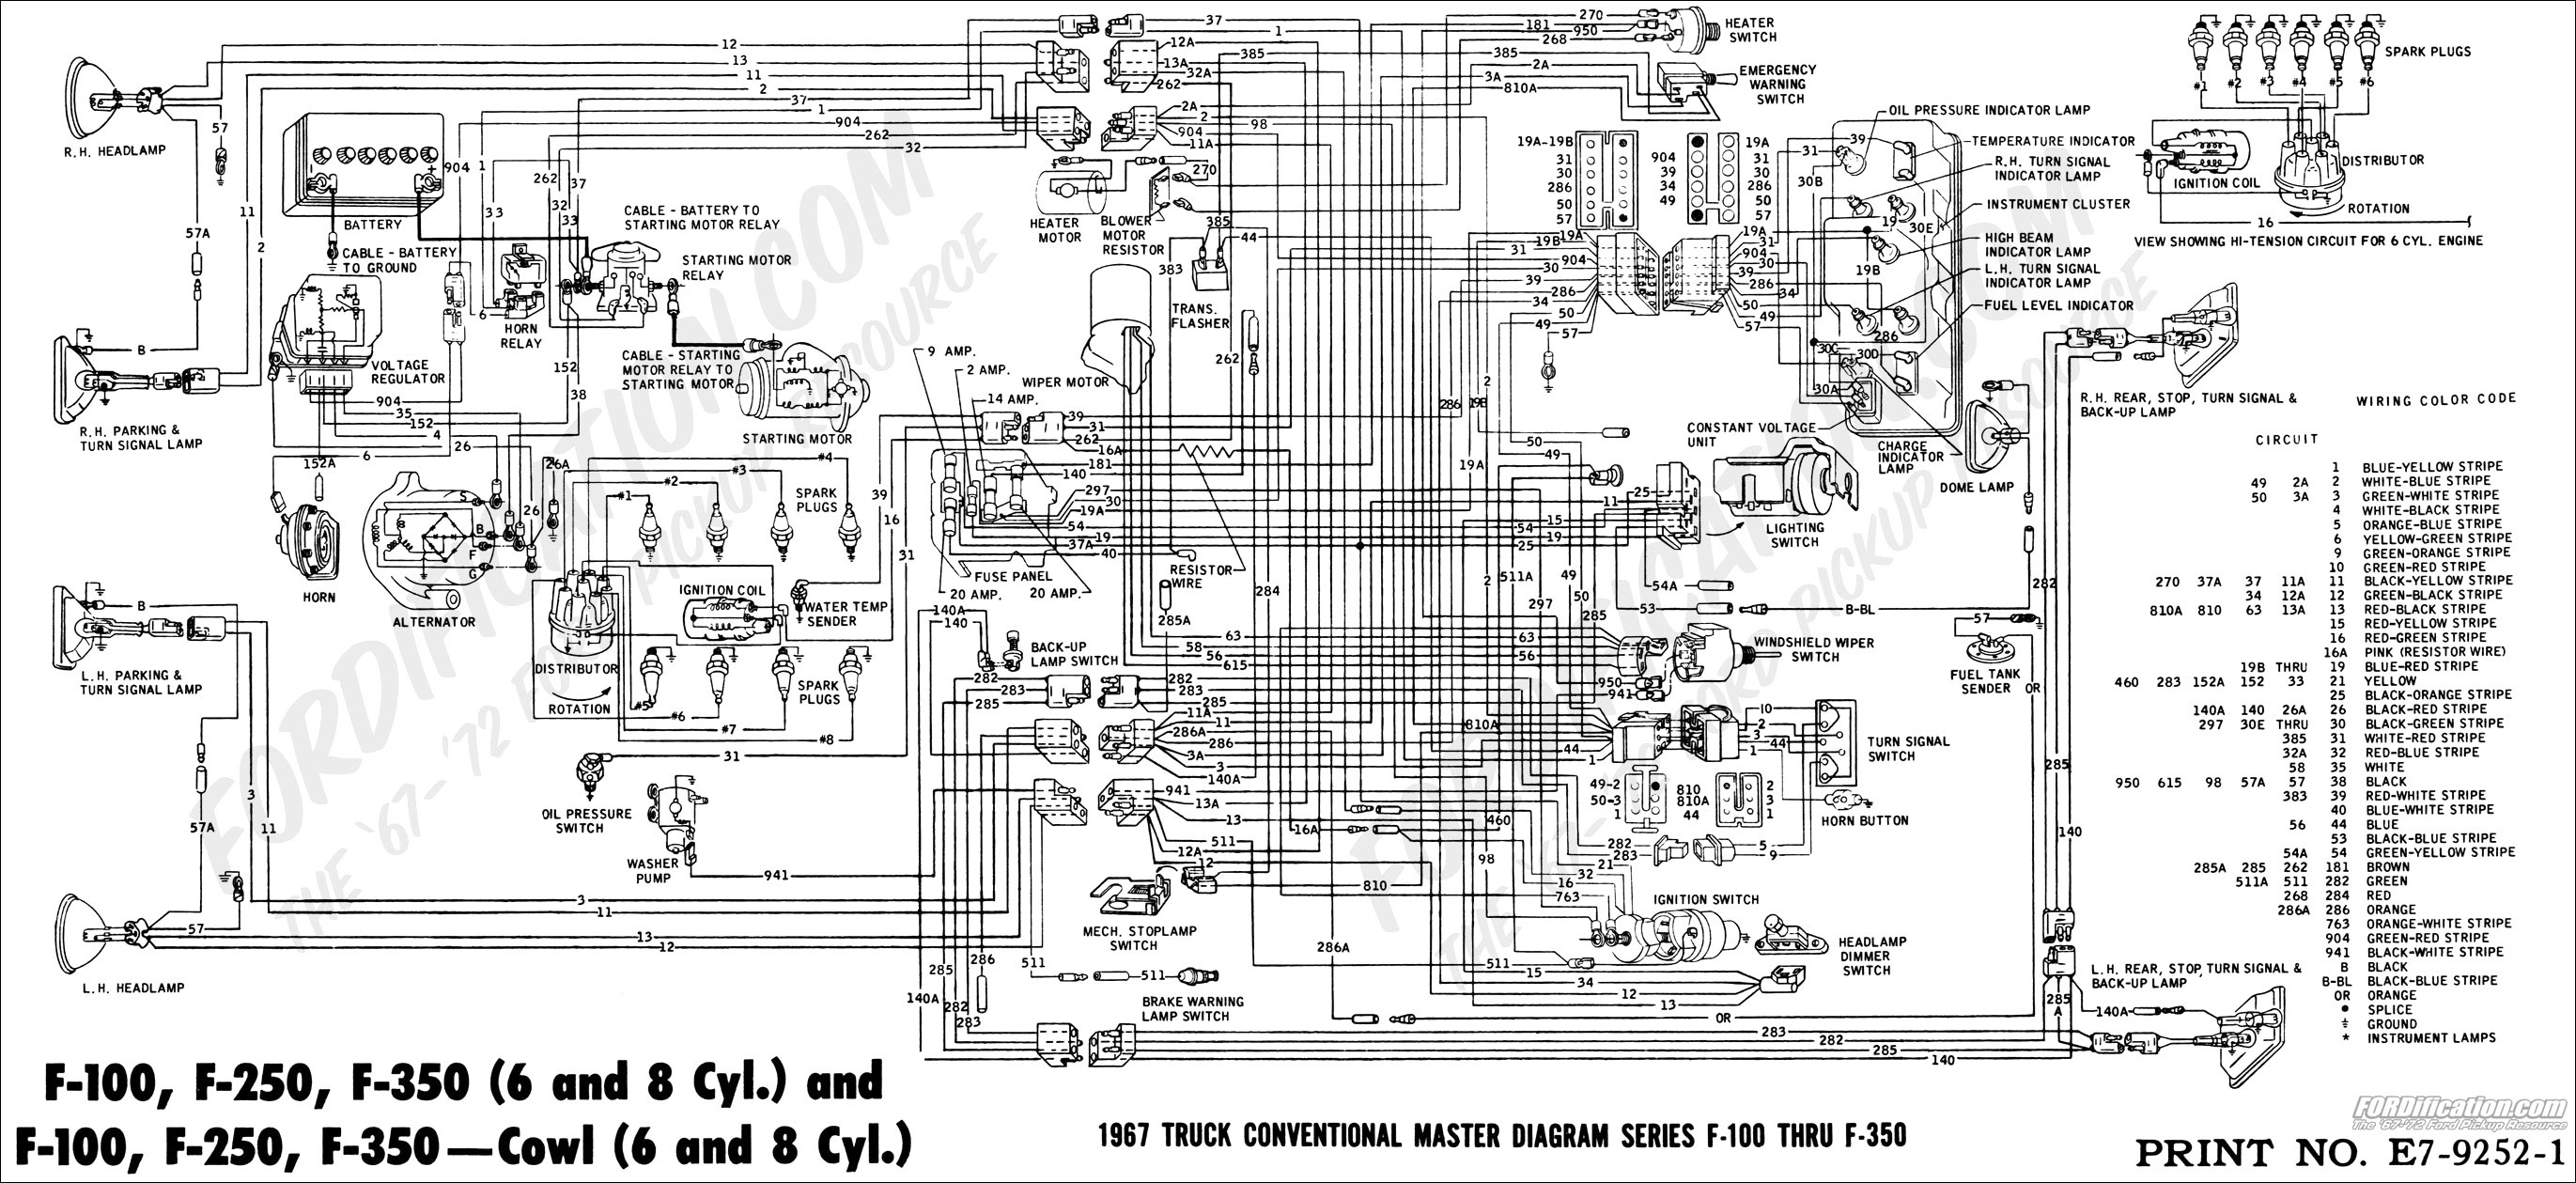 F150 wiring schematic diagram wiring diagram database 2003 ford f150 wiring schematic 2003 ford f150 radio wiring diagram rh parsplus co 1997 ford asfbconference2016